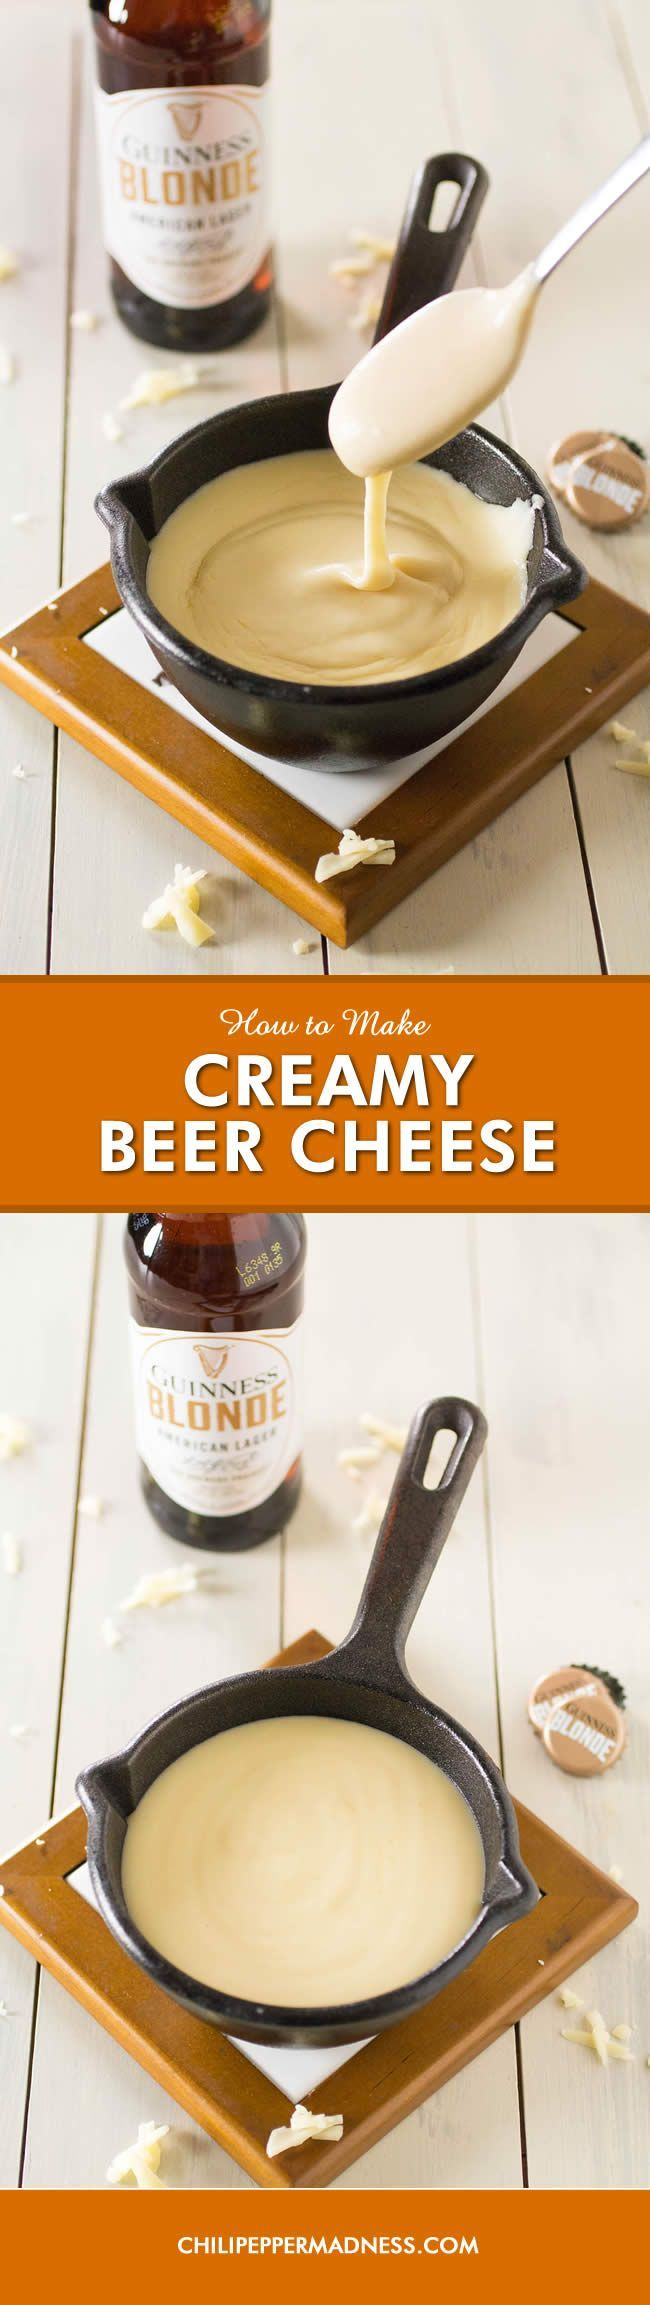 How to Make Creamy Beer Cheese Sauce - Make your own creamy beer cheese at home with this recipe using melty cheddar (or other) cheese, beer and any other seasonings you'd like. Build your own recipes with this base, though it is amazing on its own. Perfe Come and see our new website at bakedcomfortfood.com!